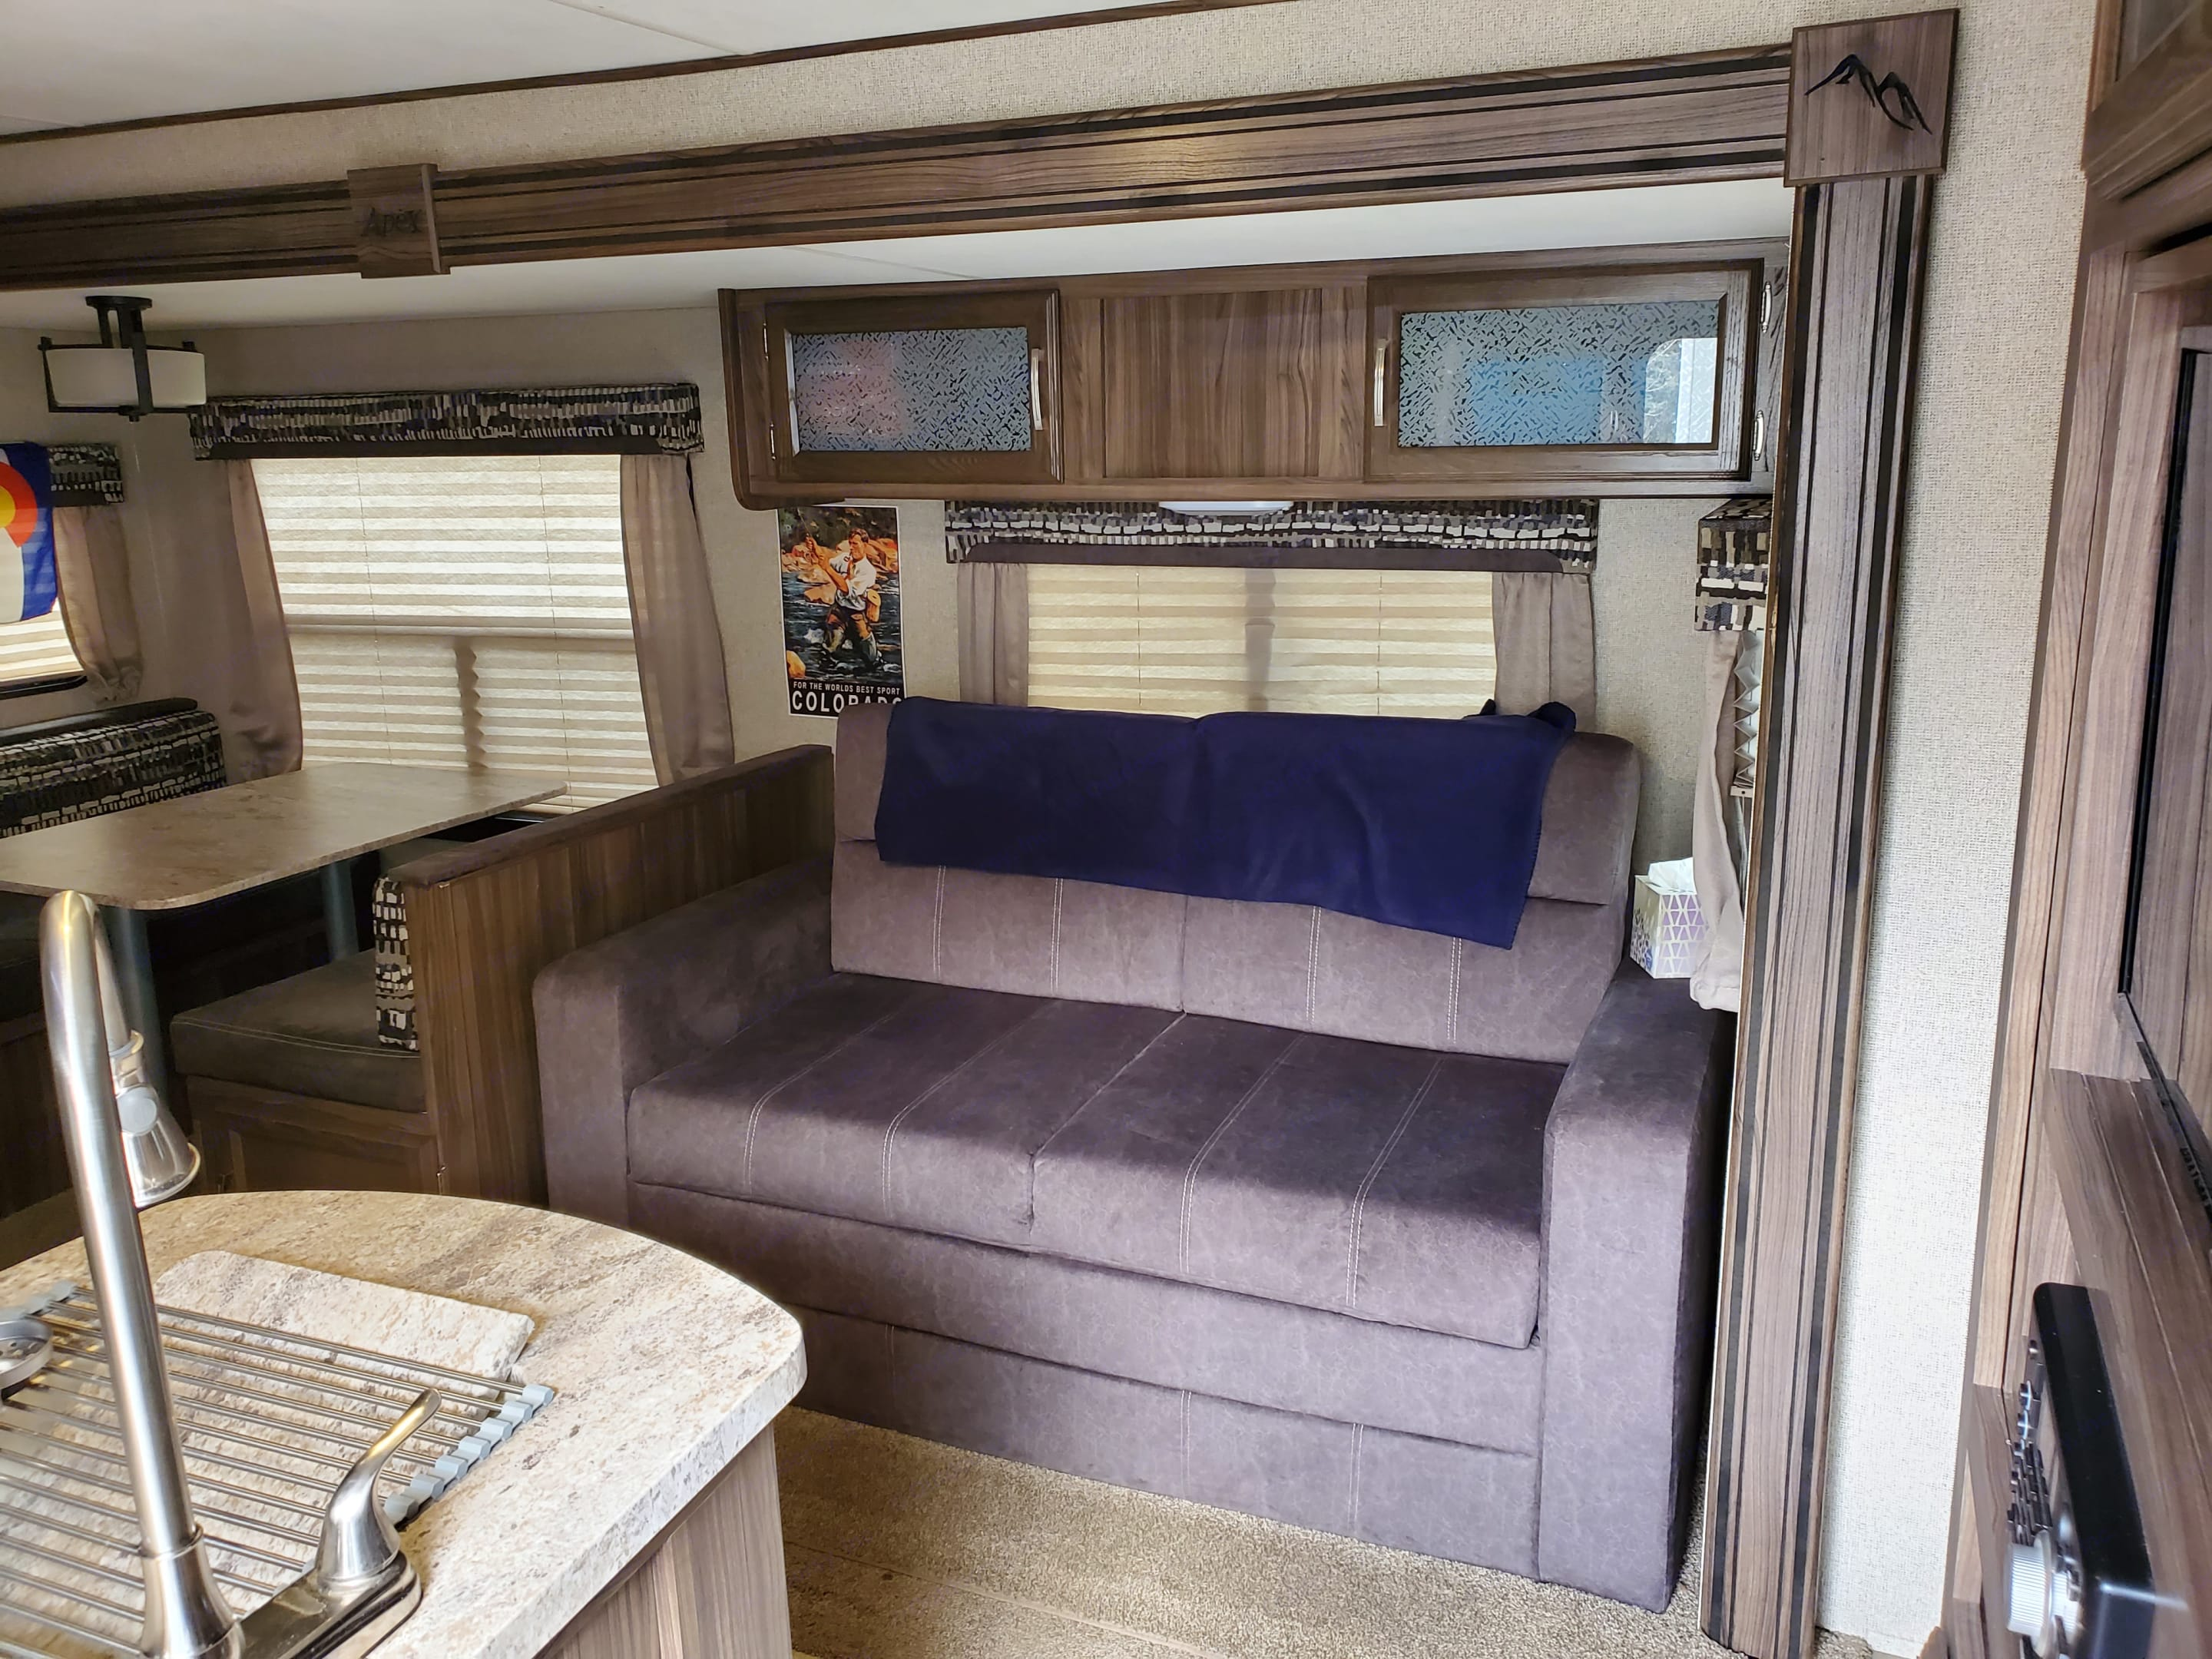 This couch actually folds out to a full queen sized bed with a full set of dishes and games above the couch!. Coachmen Apex 2018